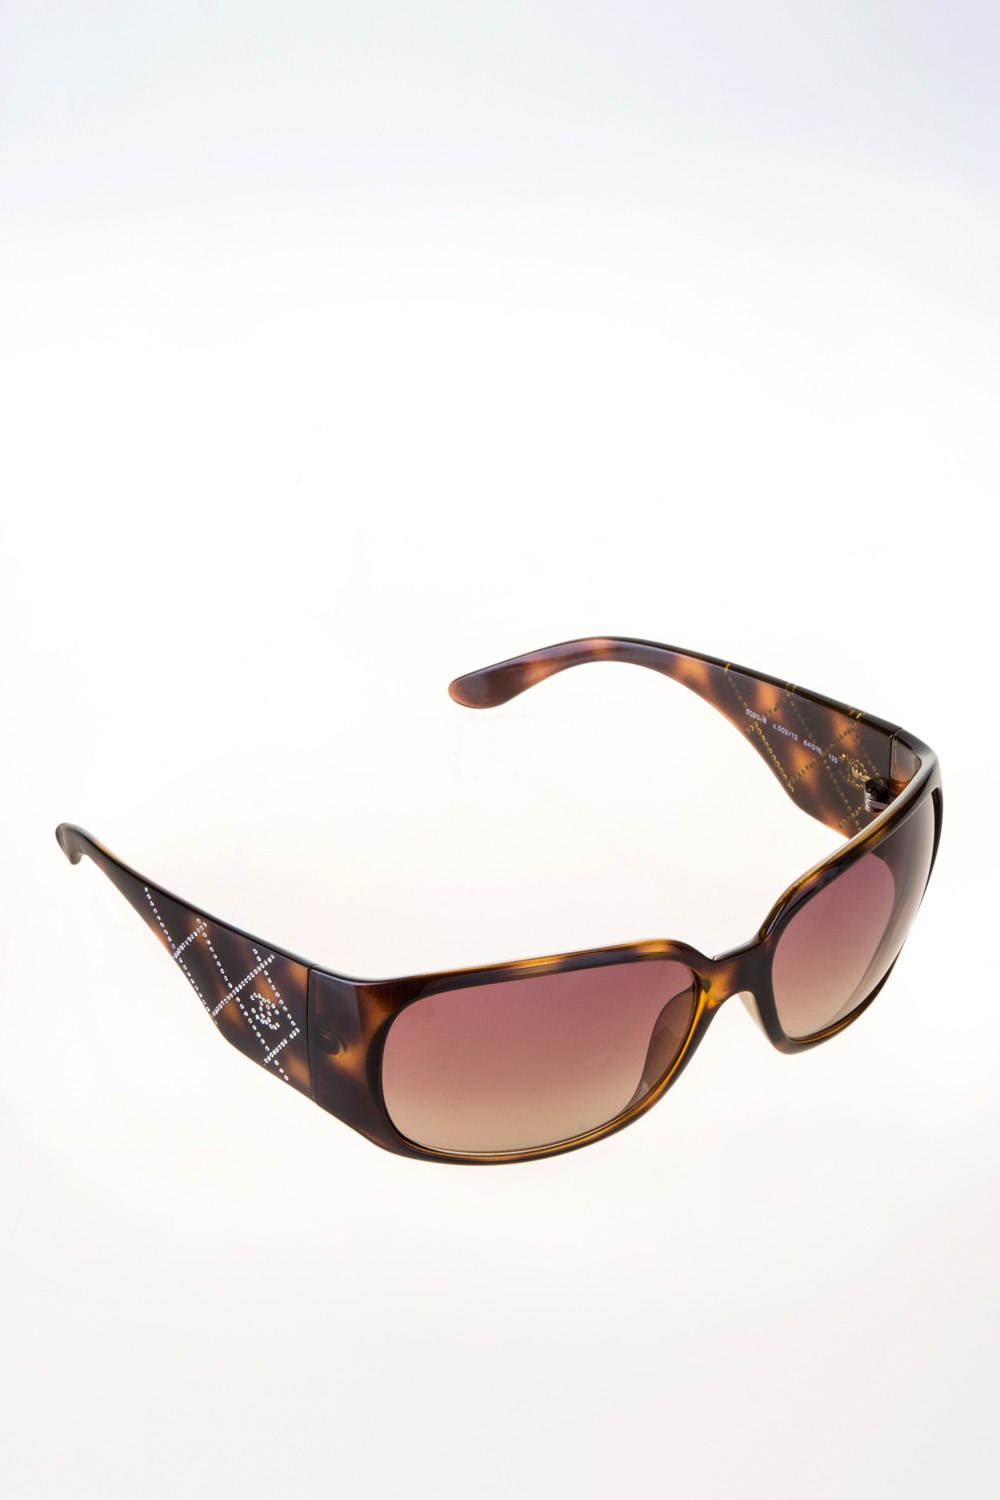 ea35e80529 Chanel 5080-B Crystal-Embellished Tortoise Shell Sunglasses ...